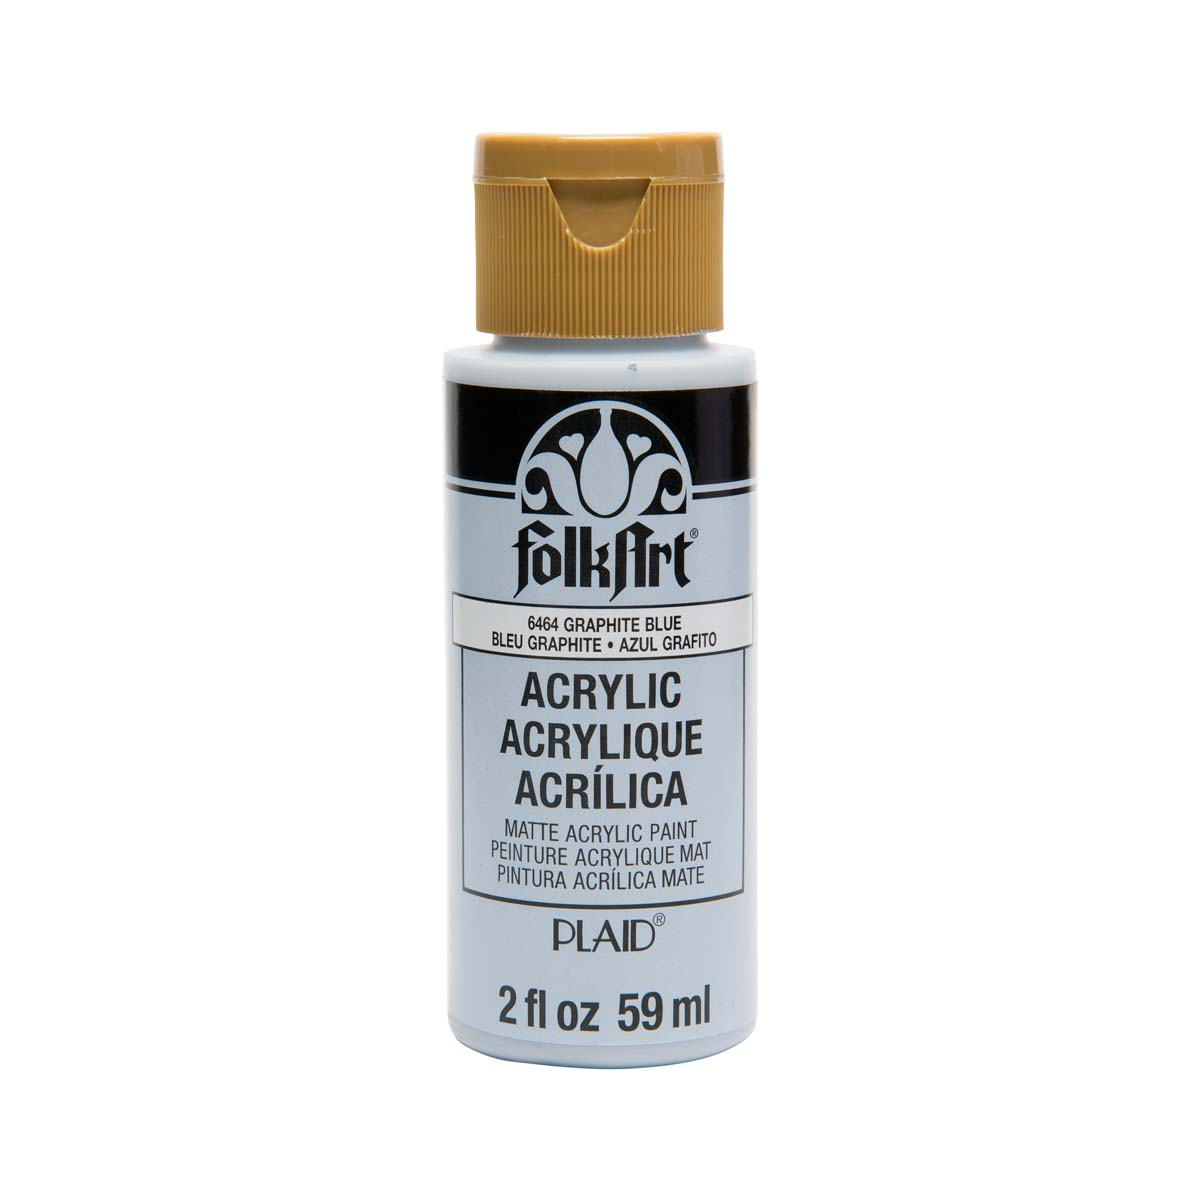 FolkArt ® Acrylic Colors - Graphite Blue, 2 oz. - 6464